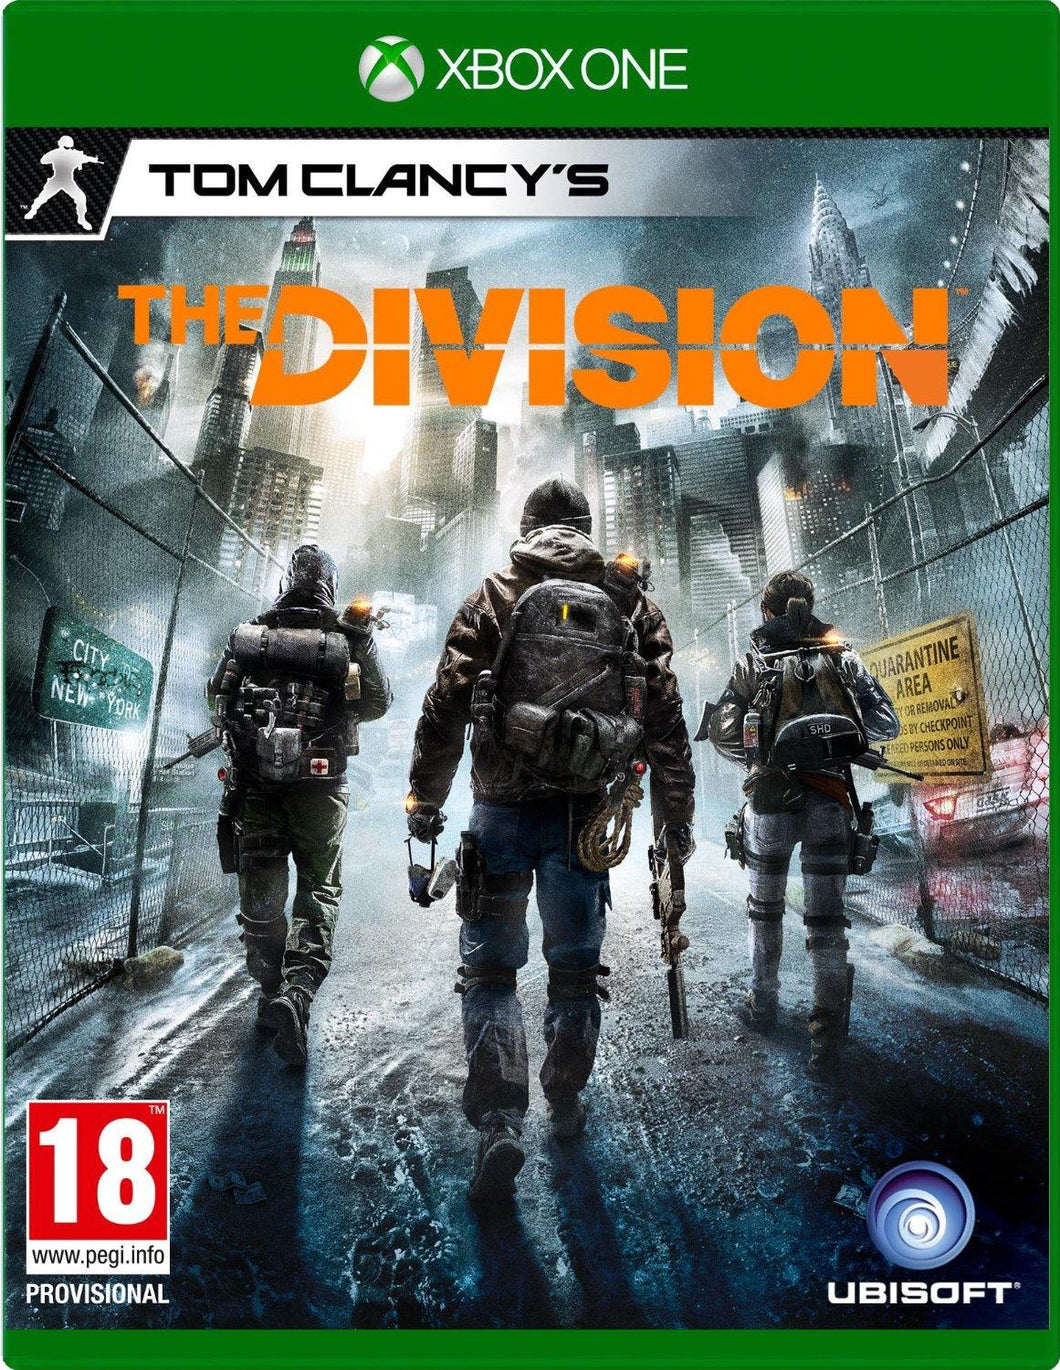 Xbox One - Tom Clancy's The Division (USADO)